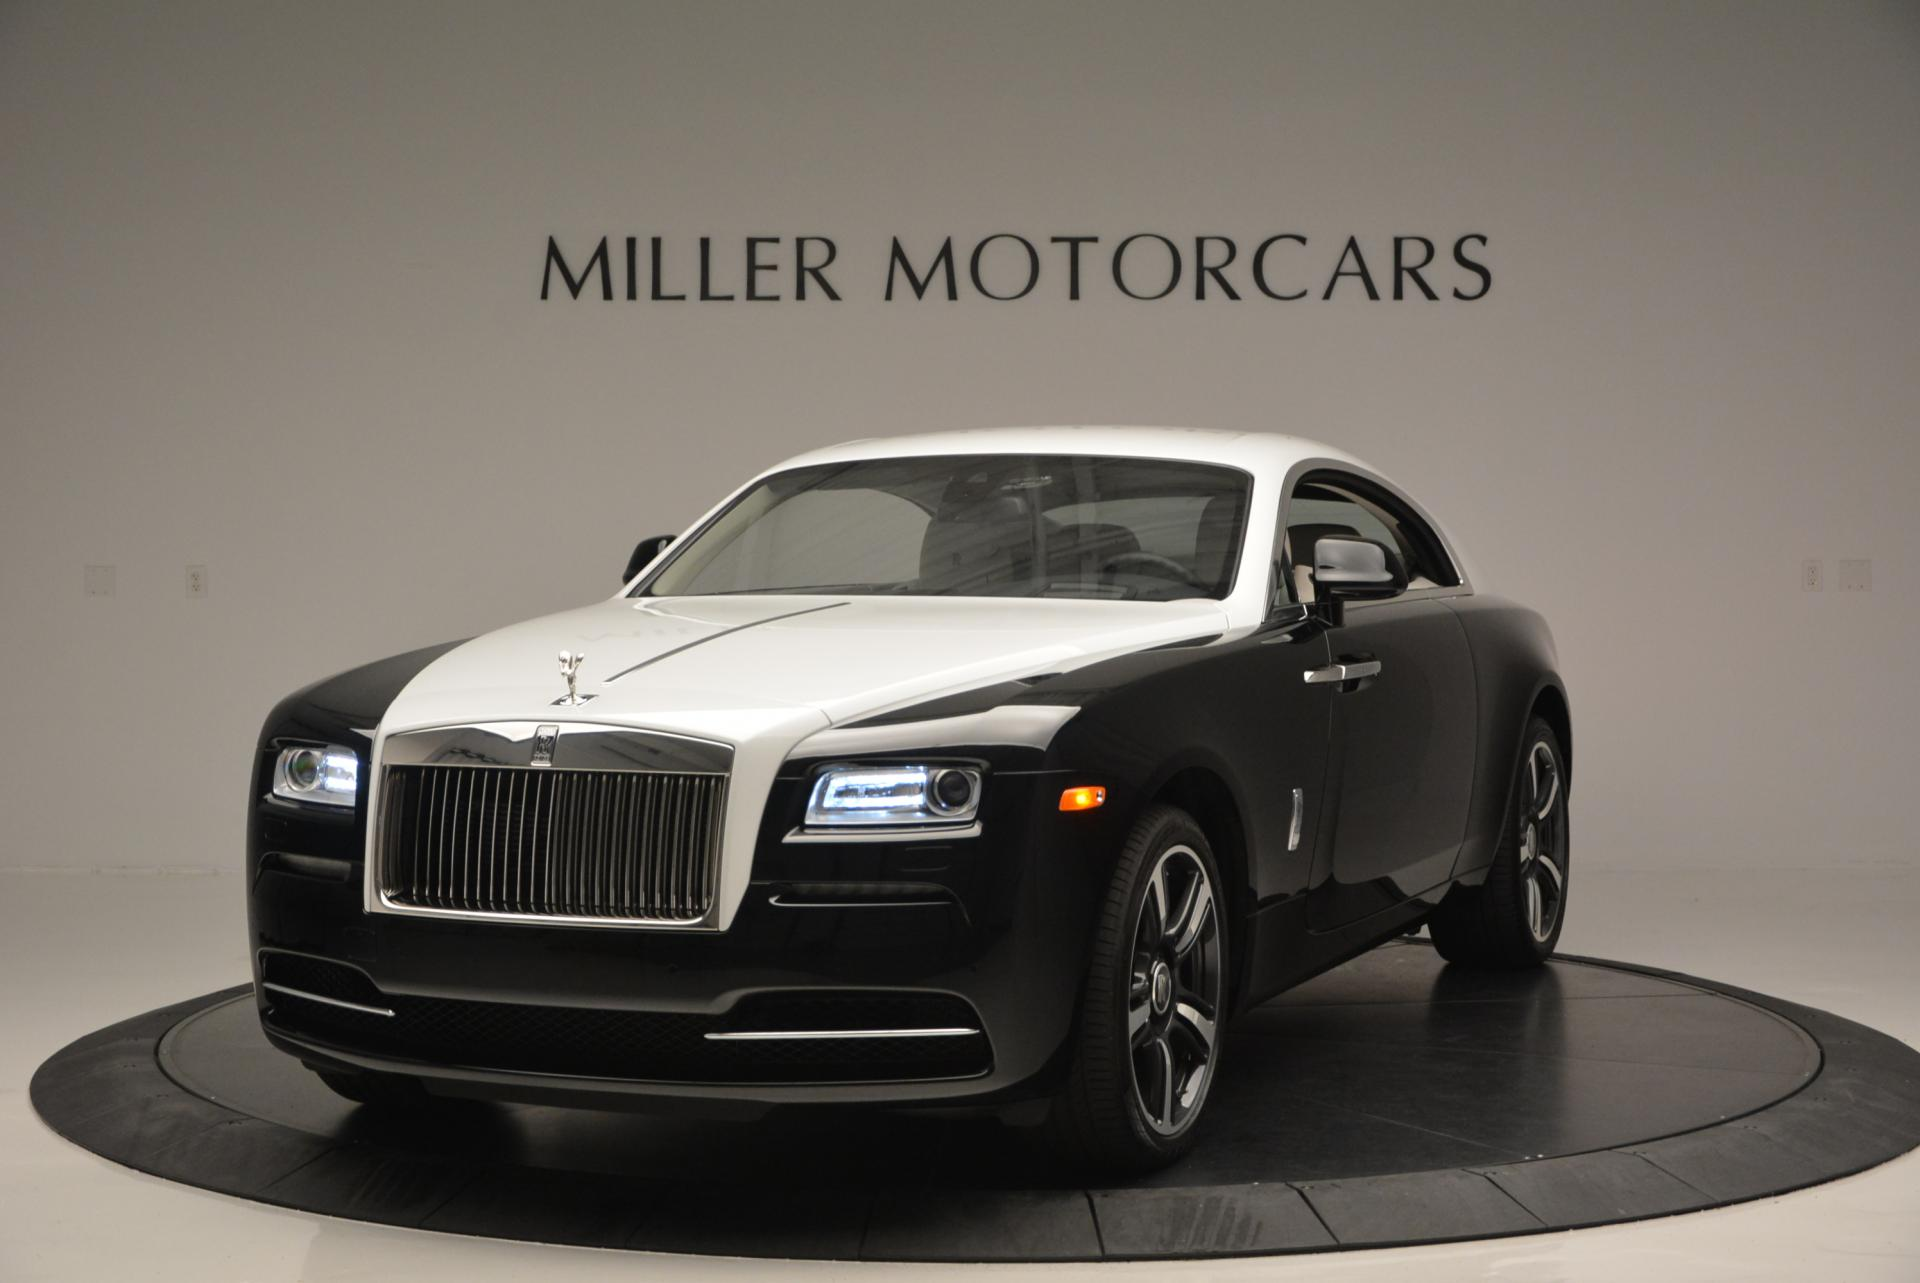 New 2016 Rolls-Royce Wraith  For Sale In Greenwich, CT 216_main